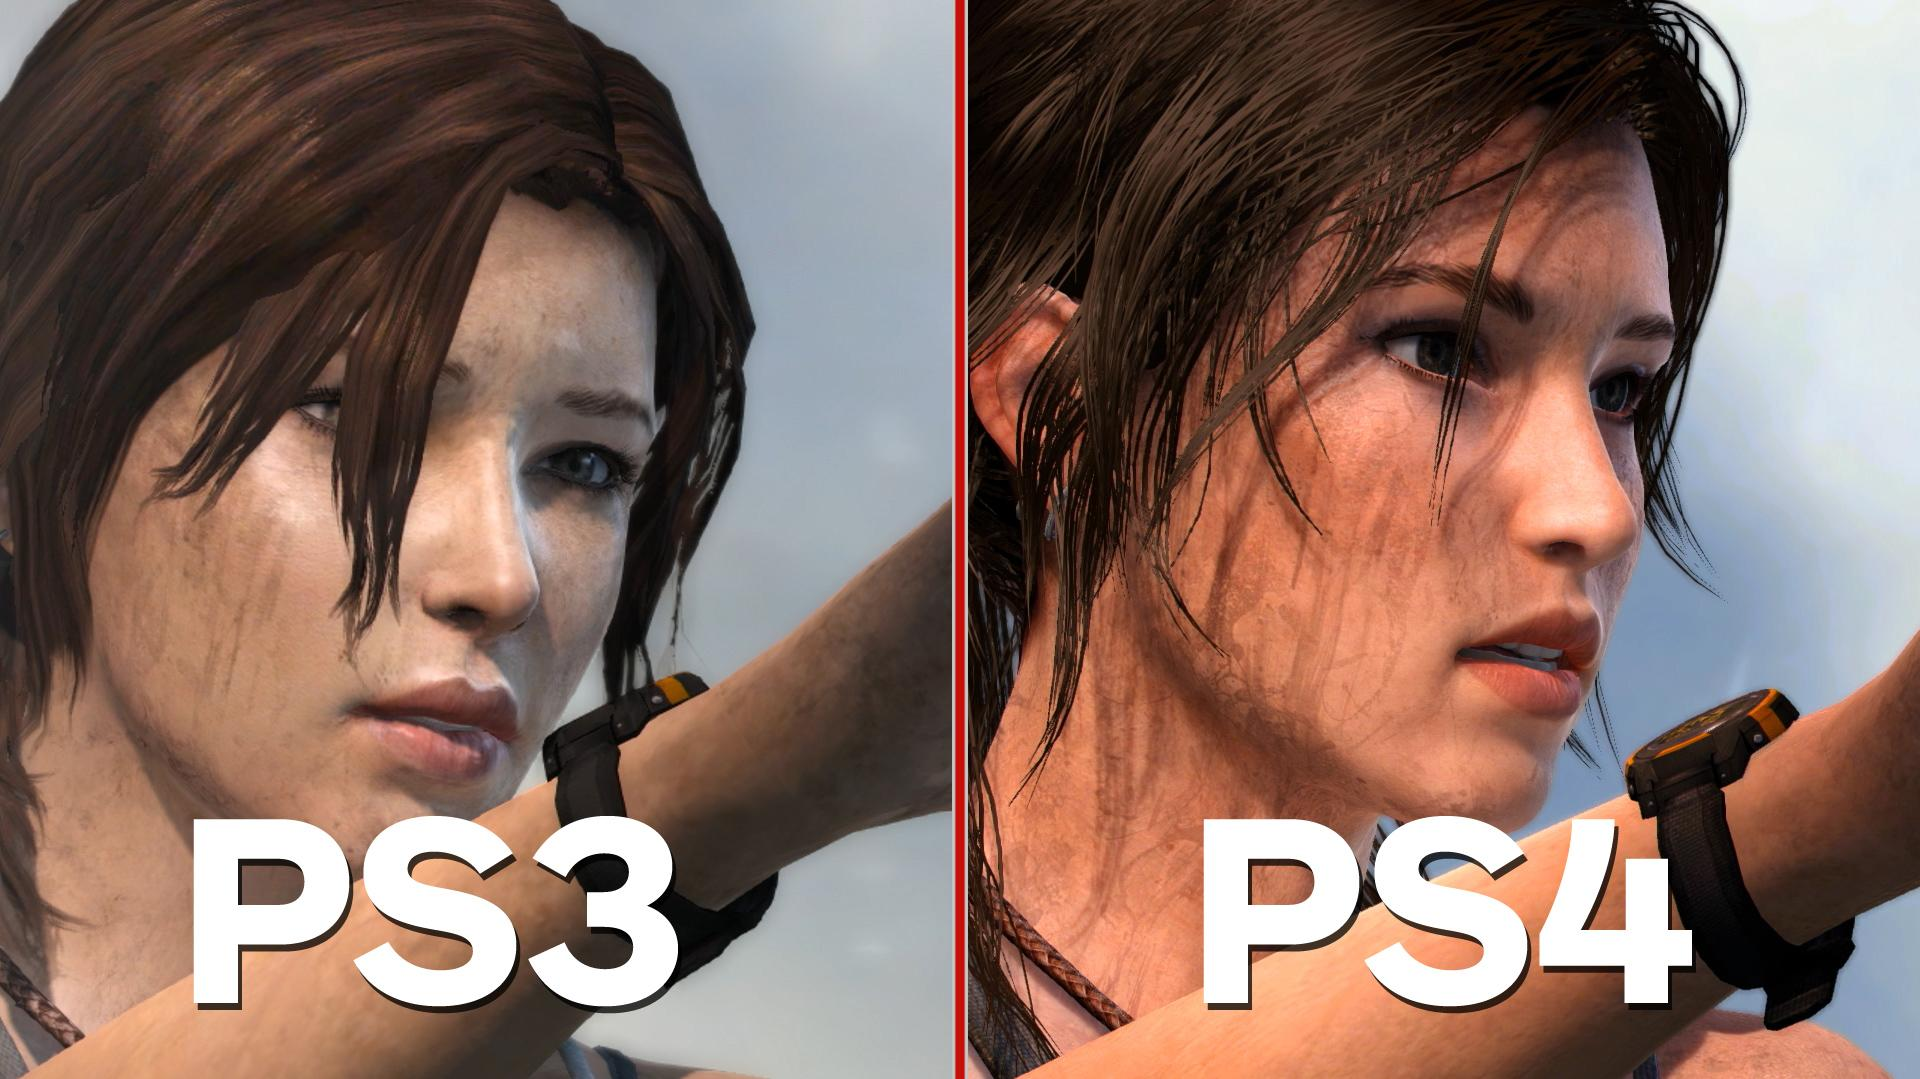 Tomb Raider Definitive Edition - PS4 PS3 Comparison and Analysis